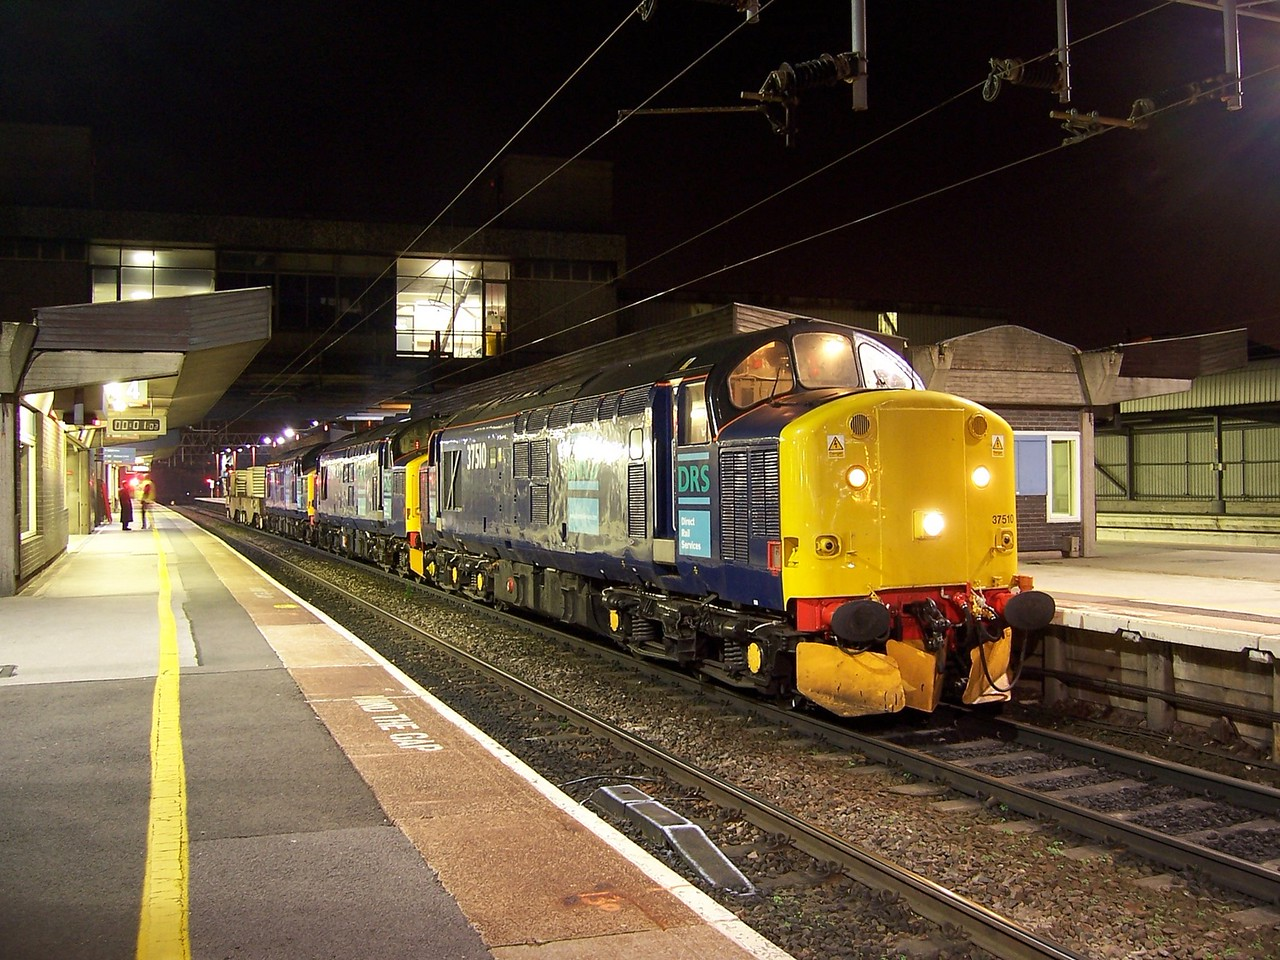 37510, 37194 and 37038 stand at Stafford with the Willesden - Crewe nuclear flasks on 01/11/06.<br /> Published in Rail Express December 2006.